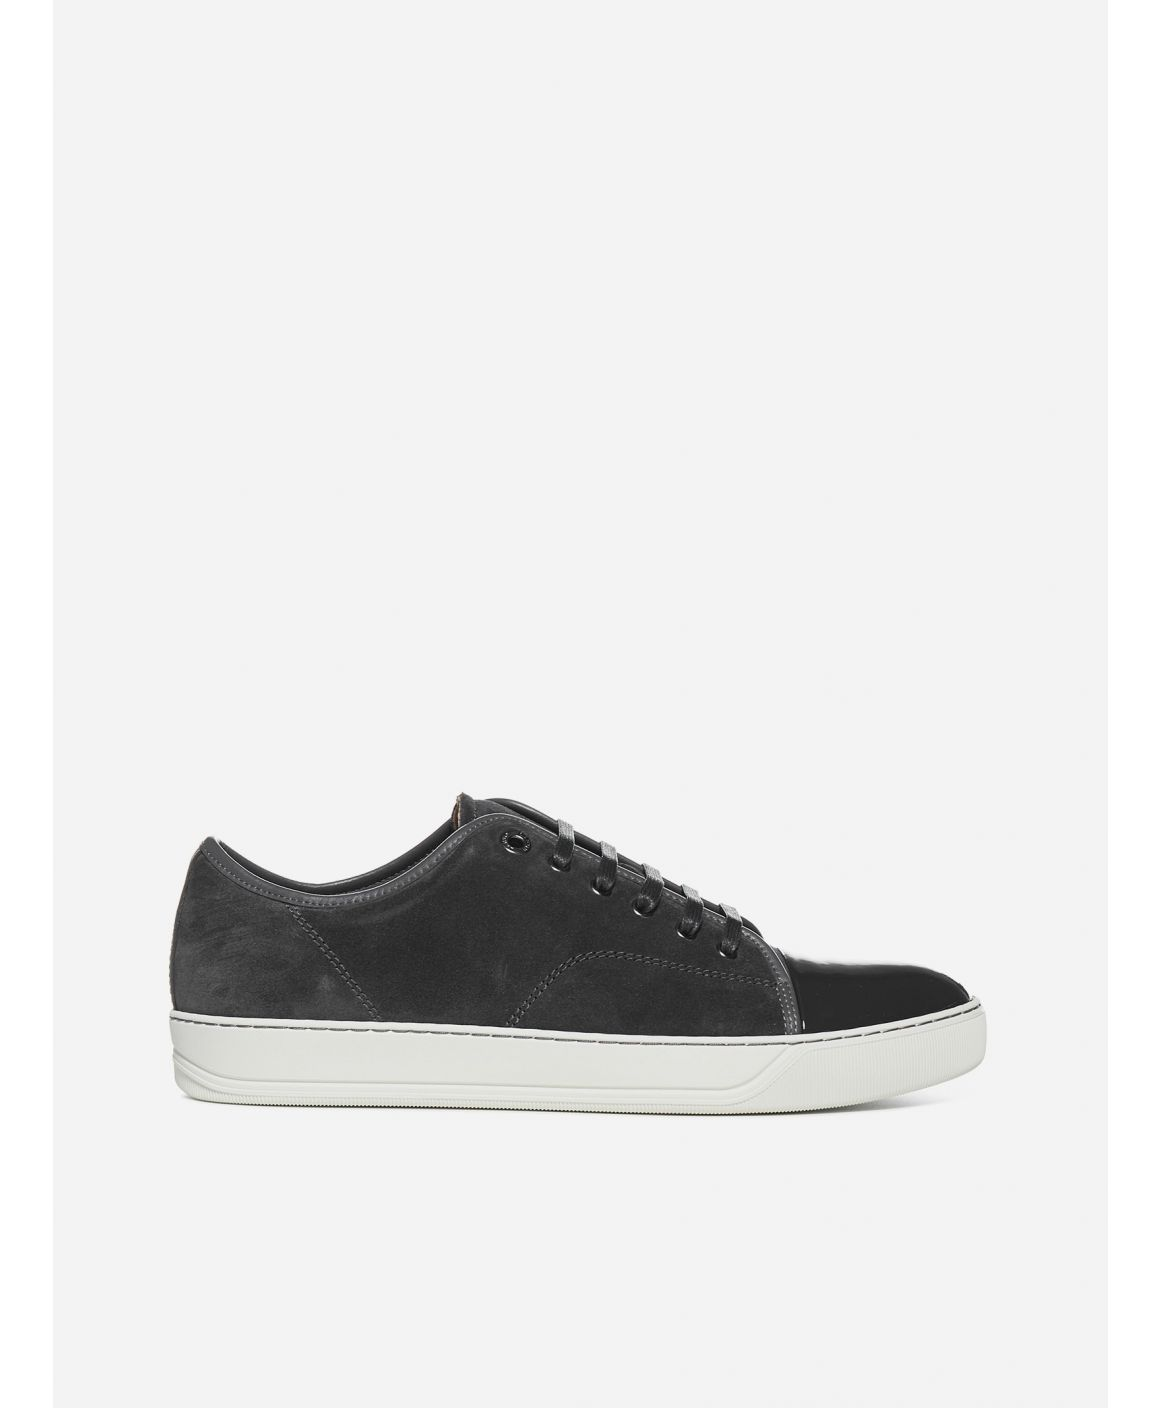 DBBI Suede and patent leather sneakers